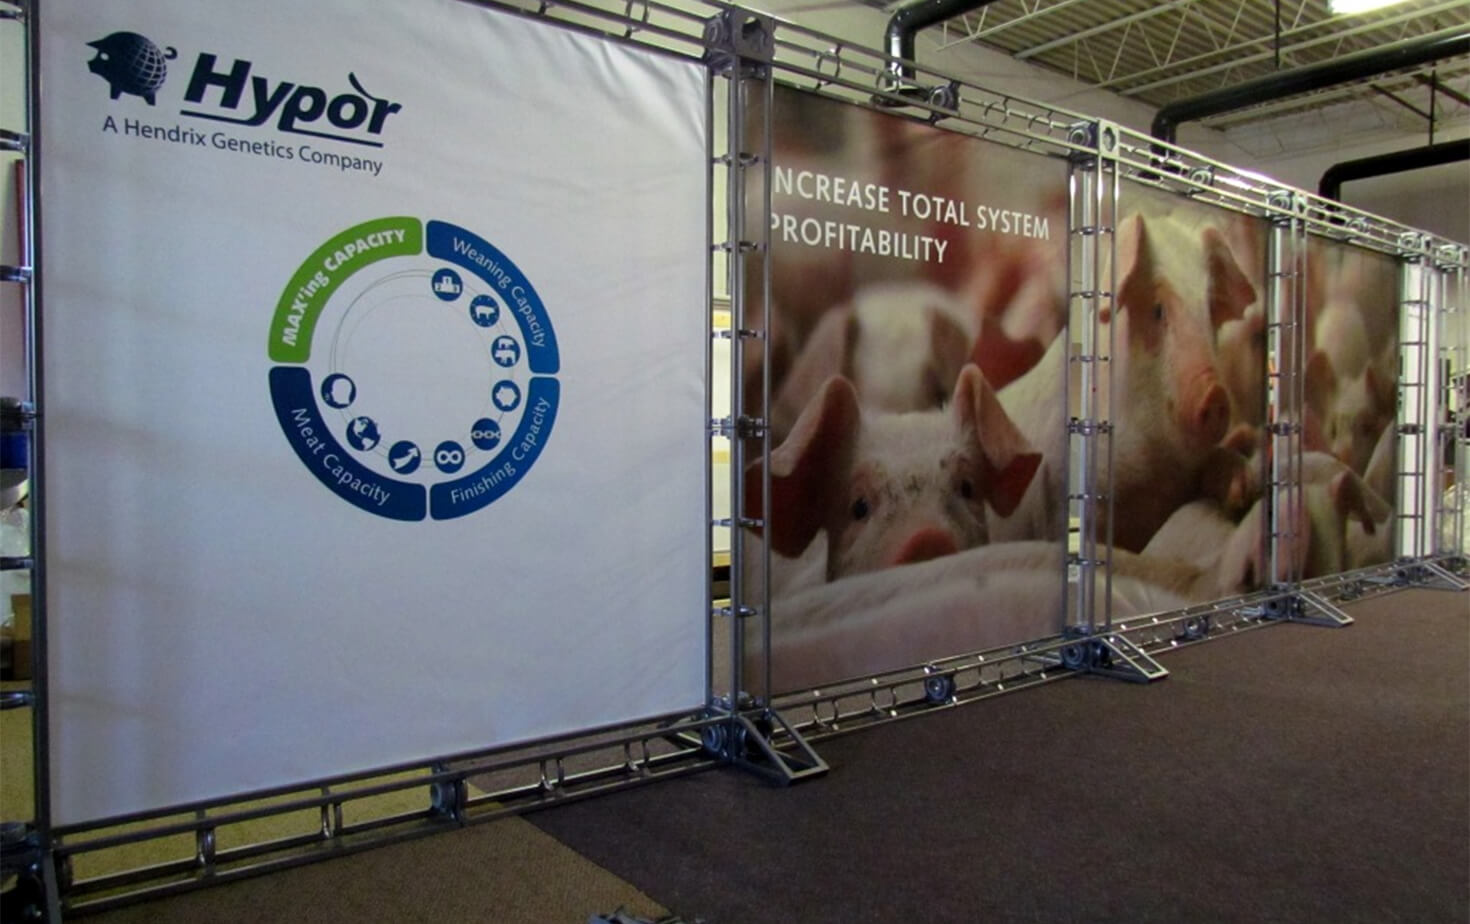 Hypor Hendrix Genetics tradeshow display on a 4 structure panel